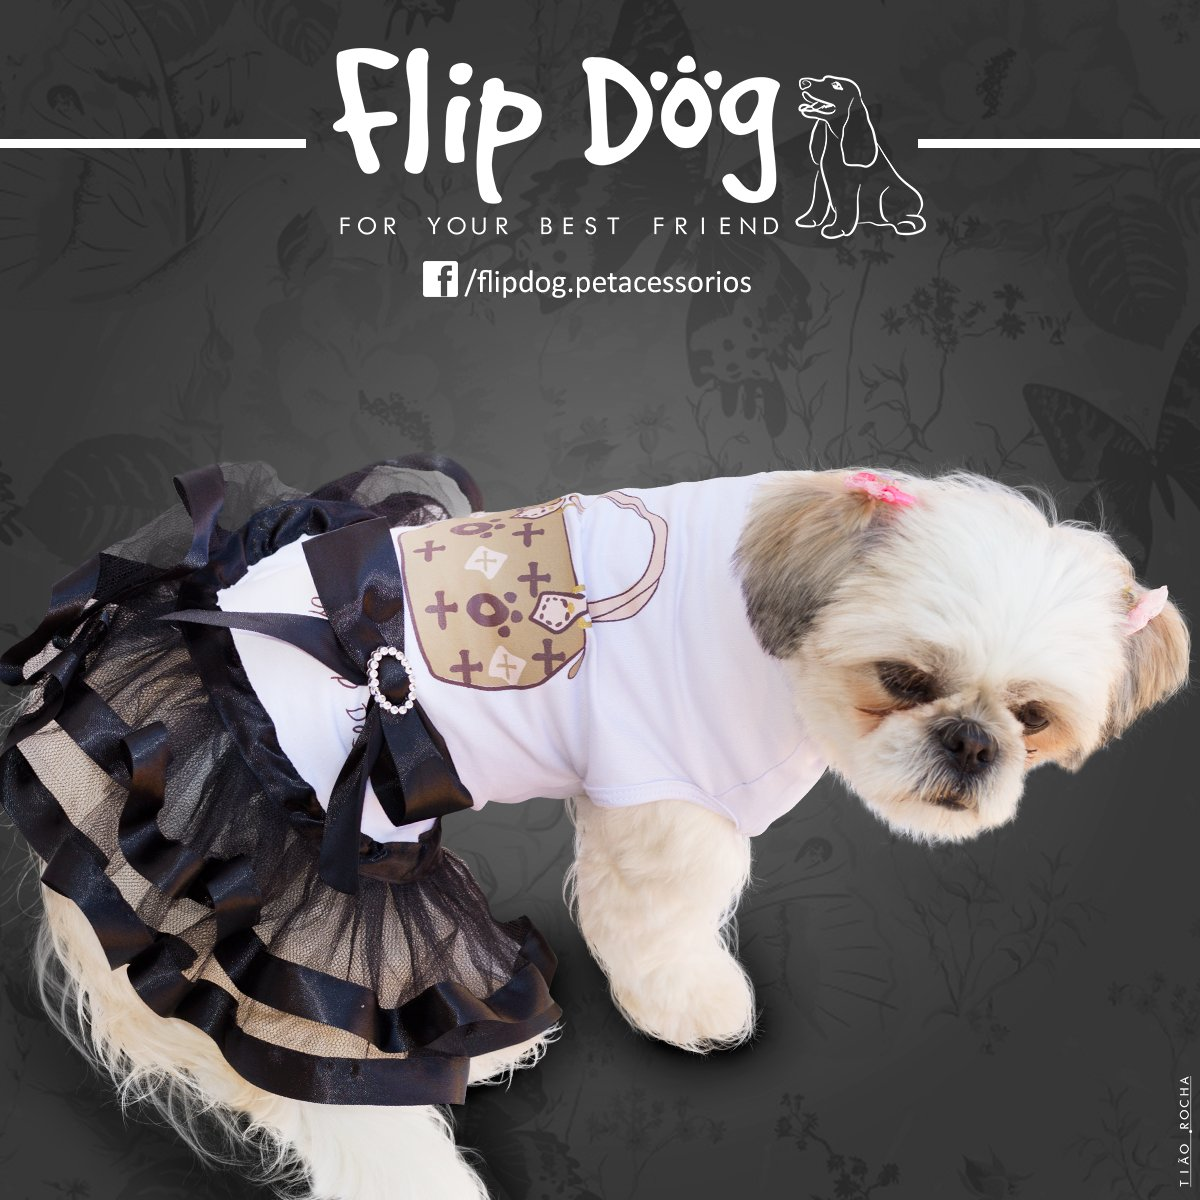 flipdog on topsy one bourse collection by flipdogpet your pet comfortable and full of style pets